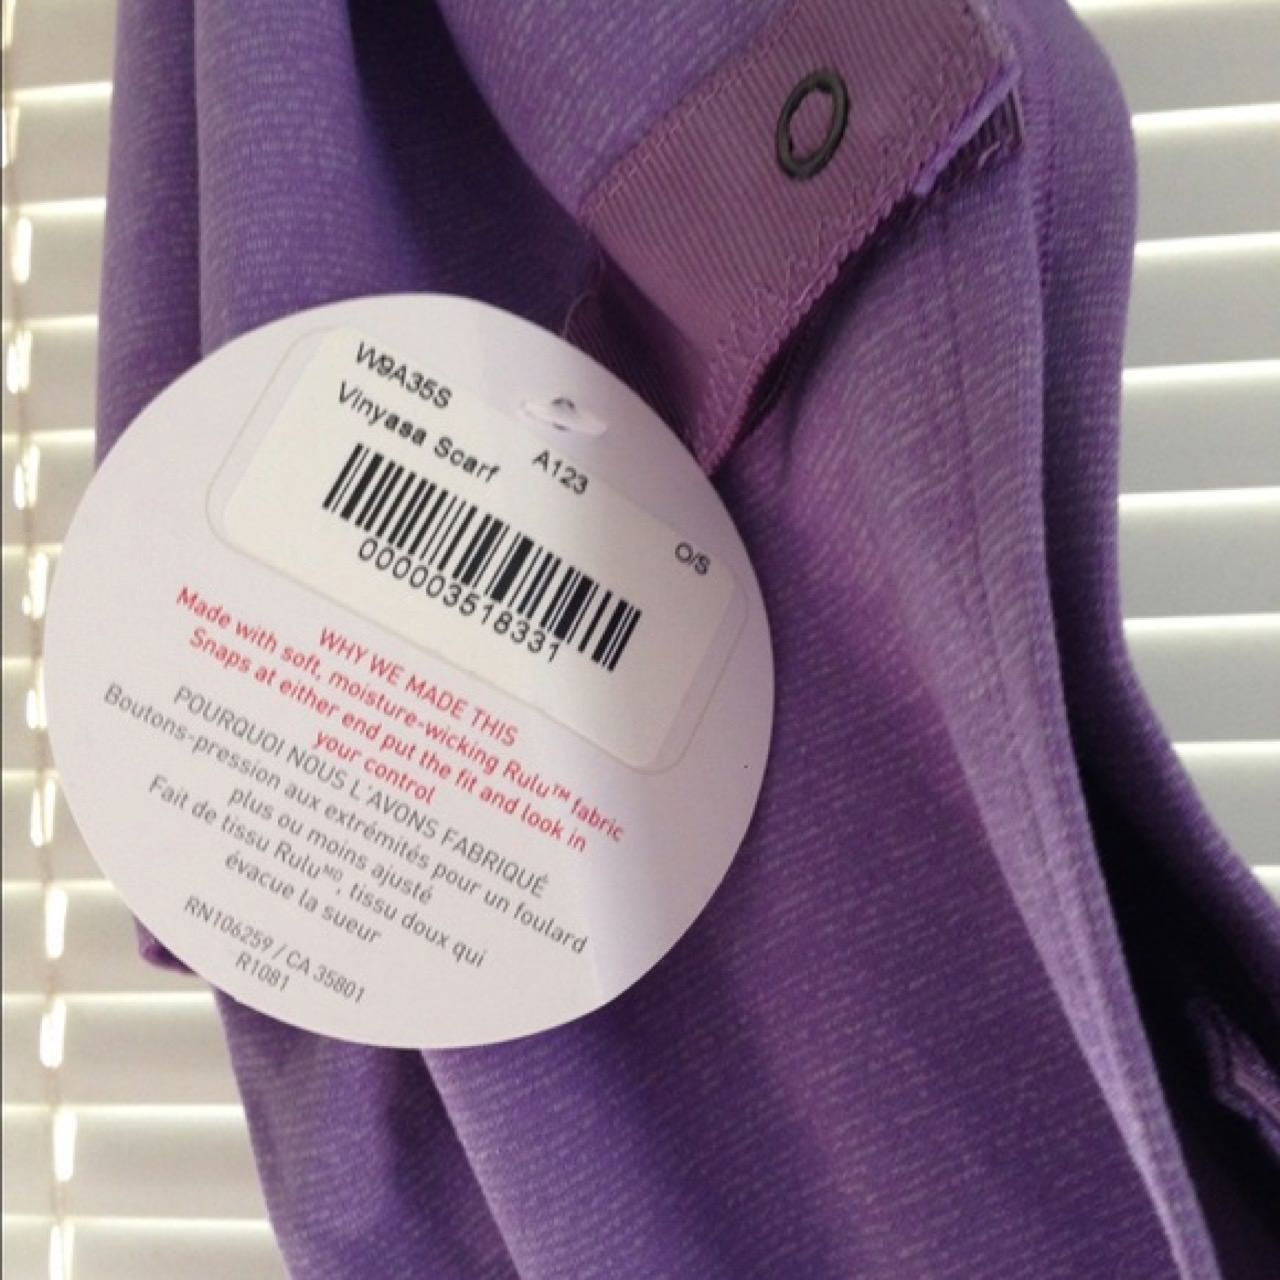 Lululemon Vinyasa Scarf *Rulu - Wee Stripe Winter Orchid Heathered Winter Orchid / Deep Zinfandel